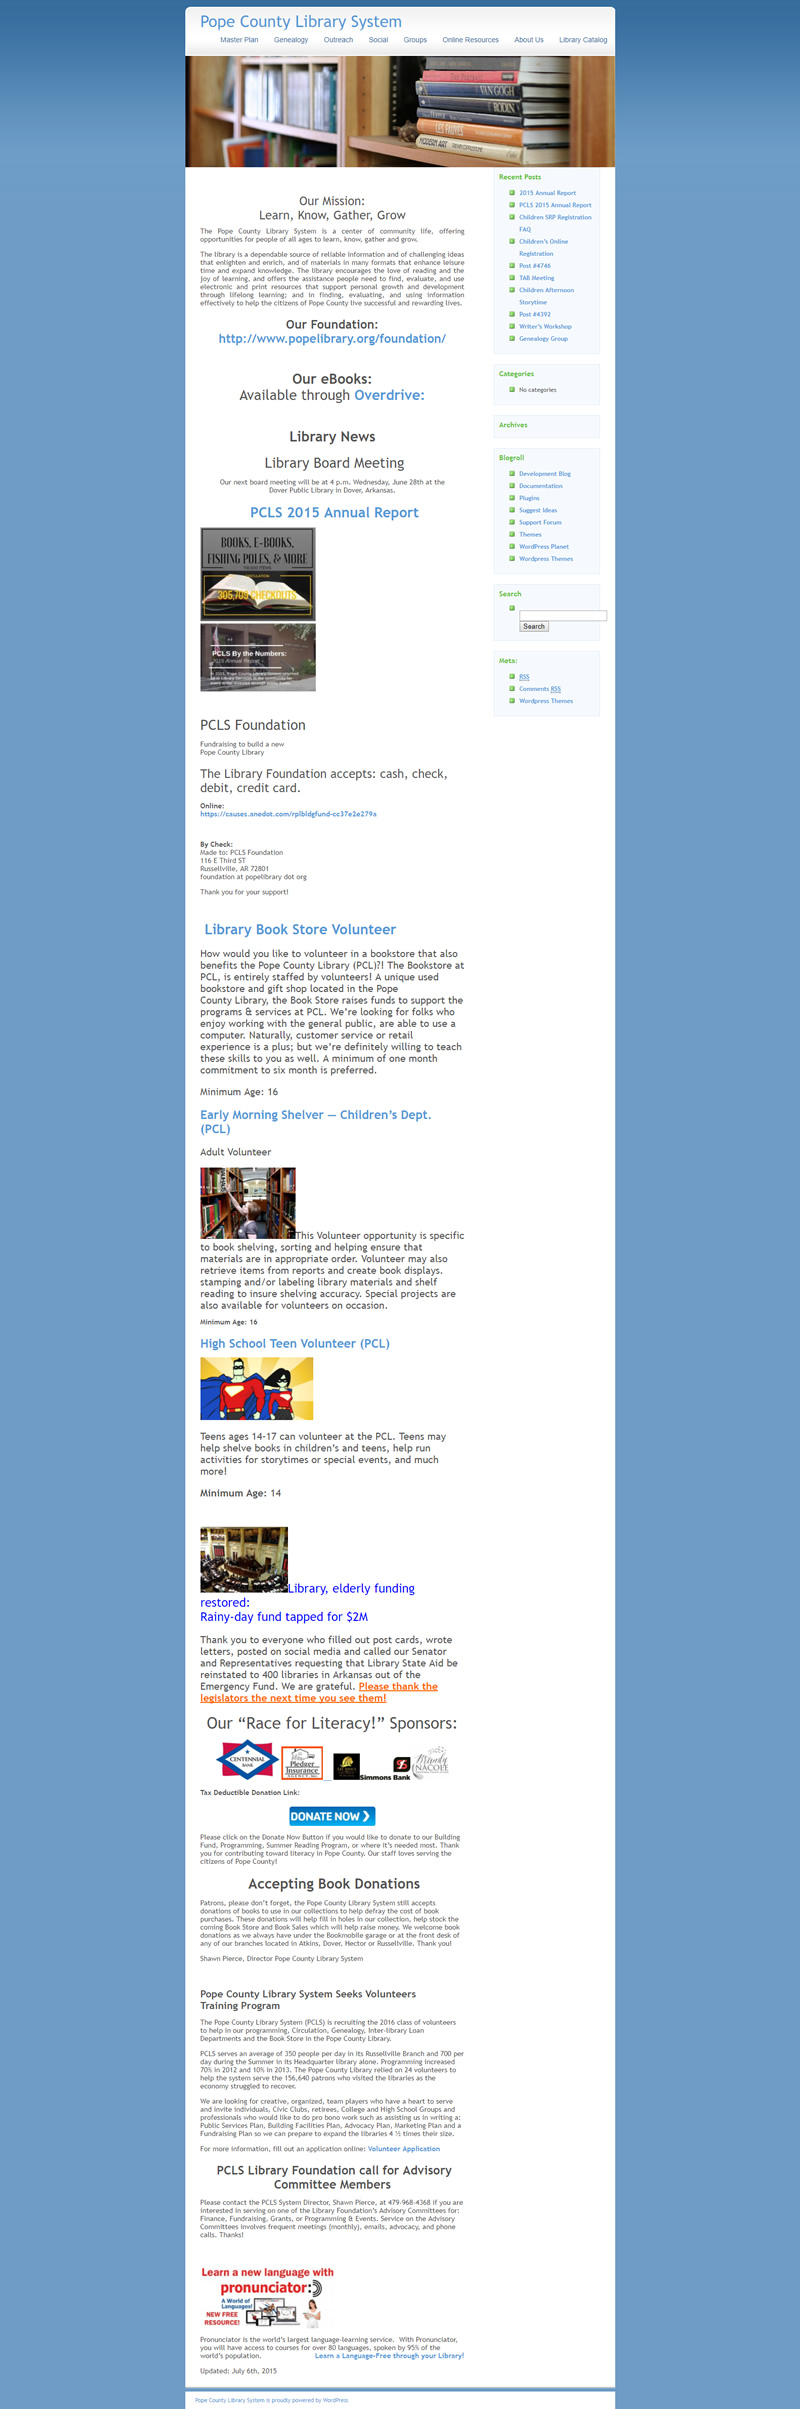 Pope County Library Systems Full Web Design Image